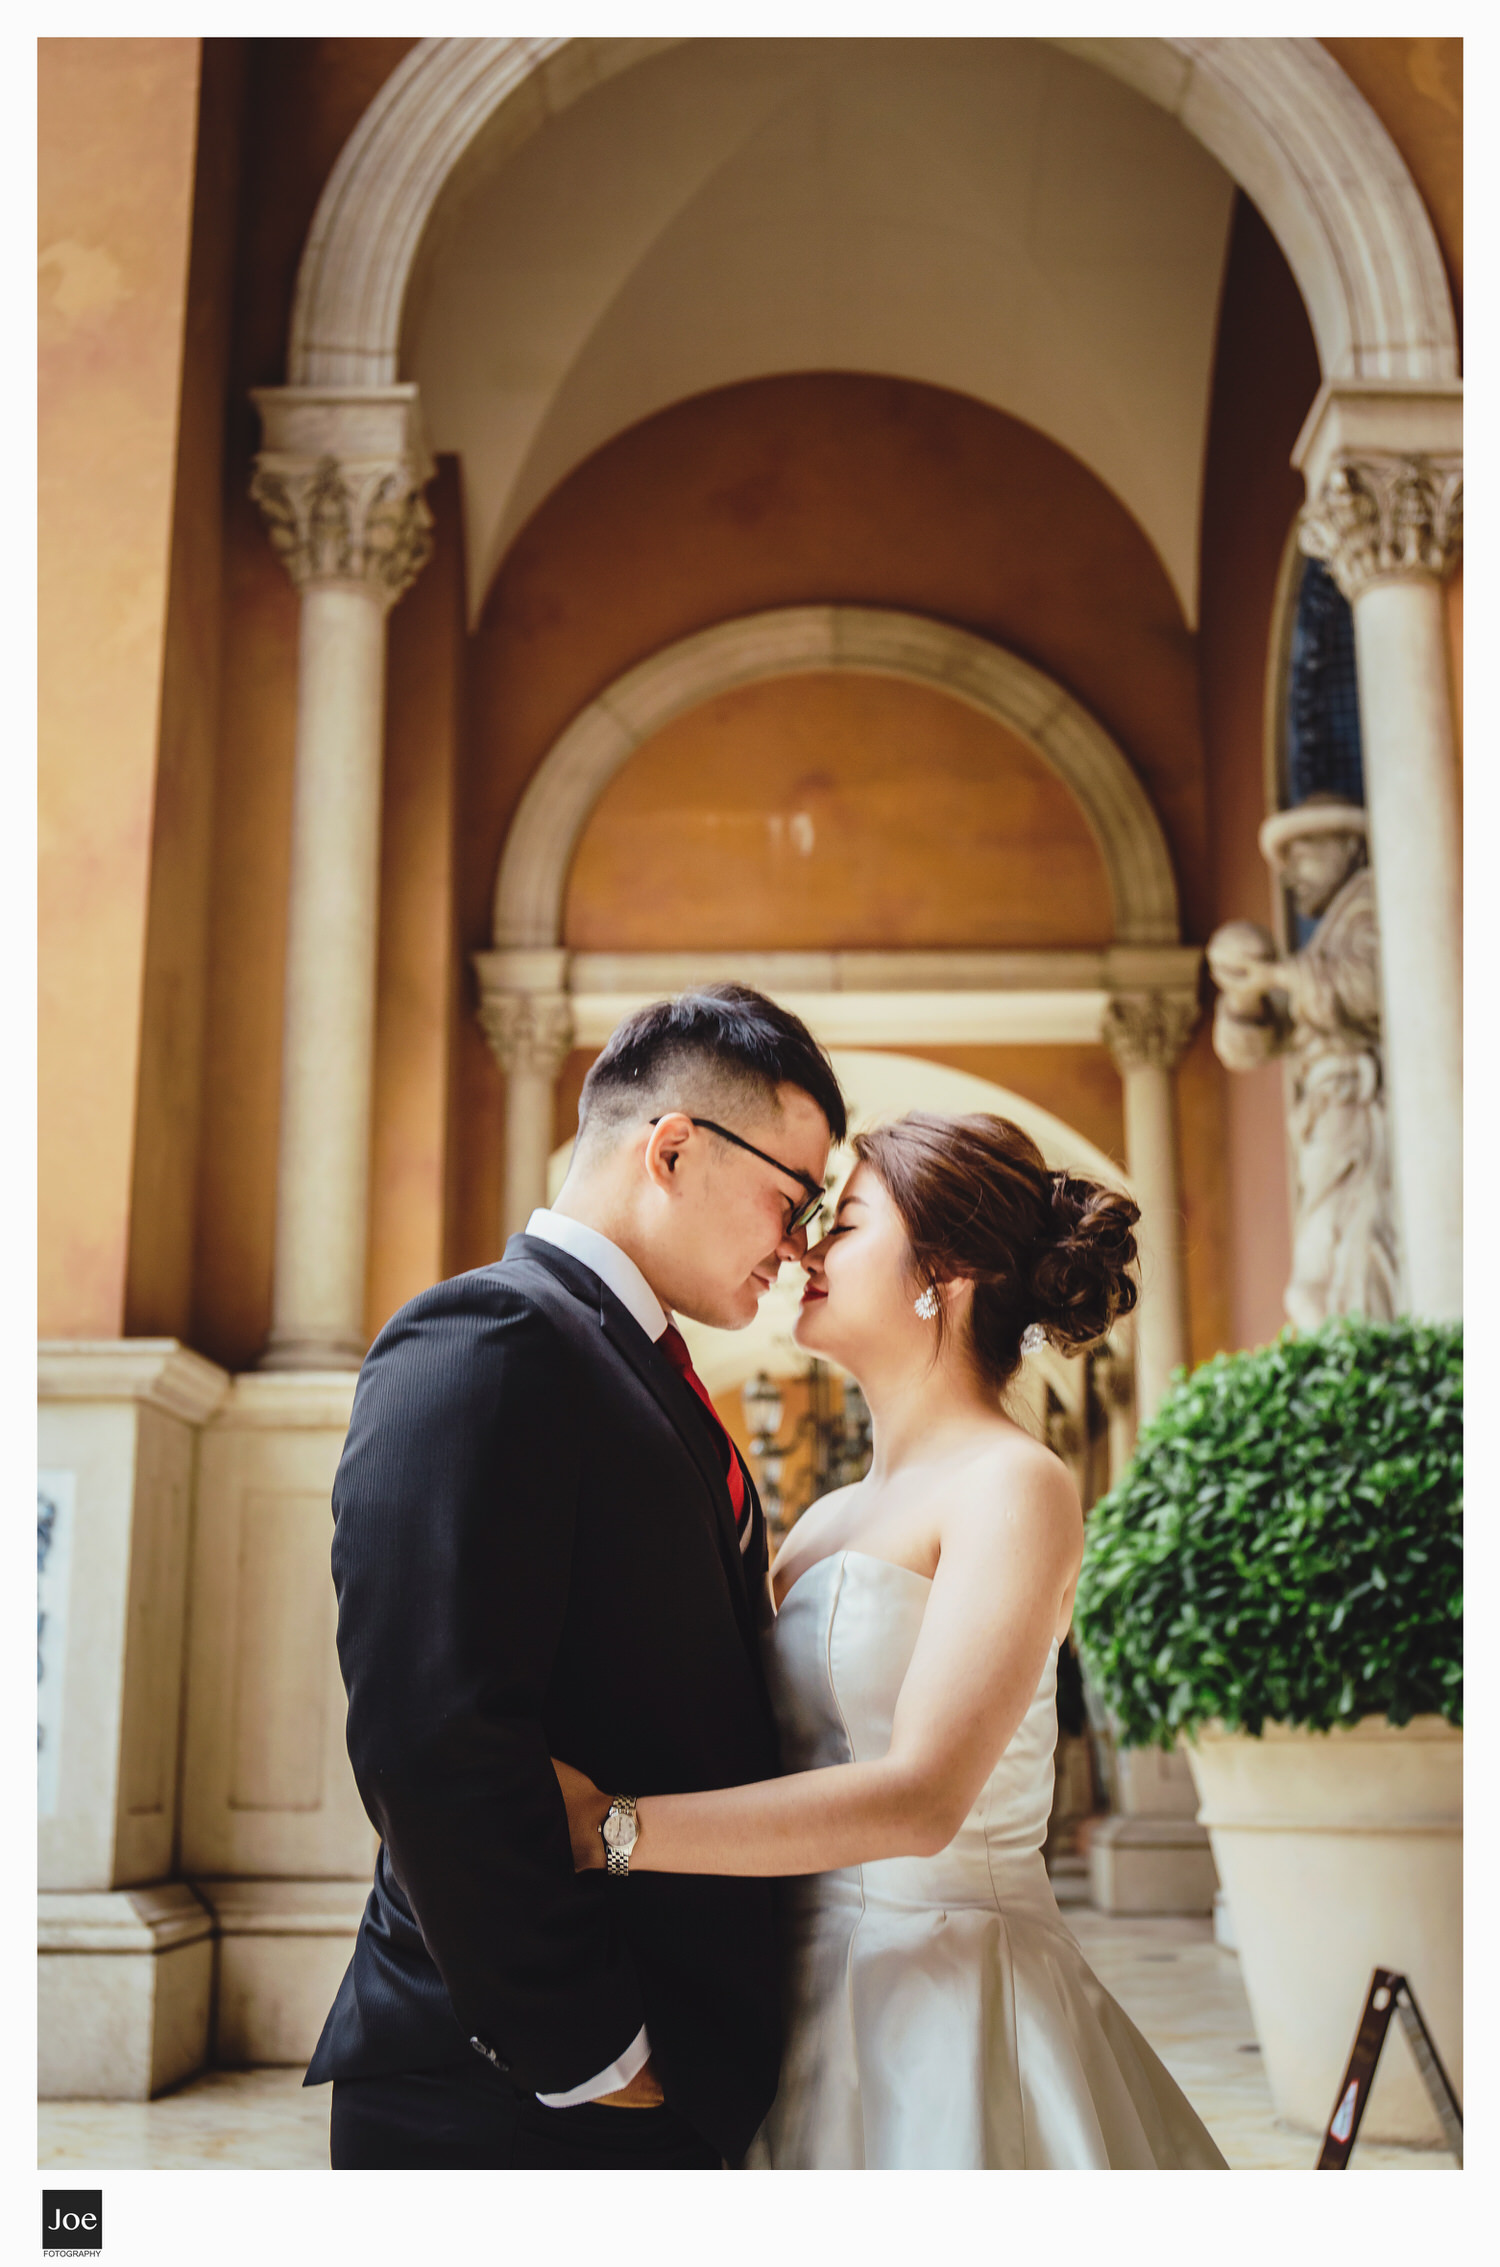 032-four-seasons-hotel-macau-pre-wedding-jie-min-joe-fotography.jpg